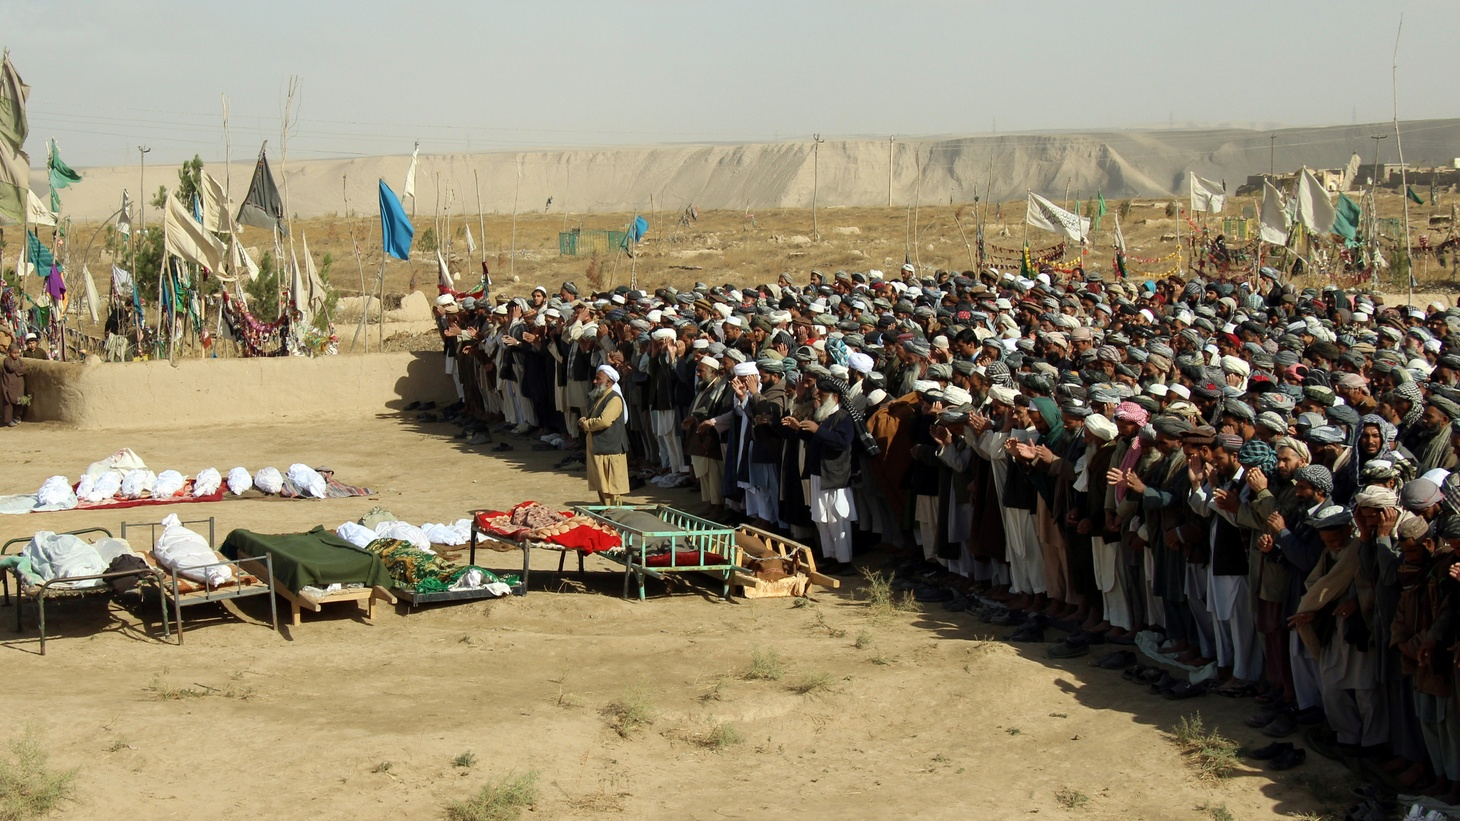 Afghans perform prayers at the funeral for the victims killed by an airstrike called in to protect Afghan and U.S. forces during a raid on suspected Taliban militants, in Kunduz, Afghanistan, November 4, 2016.